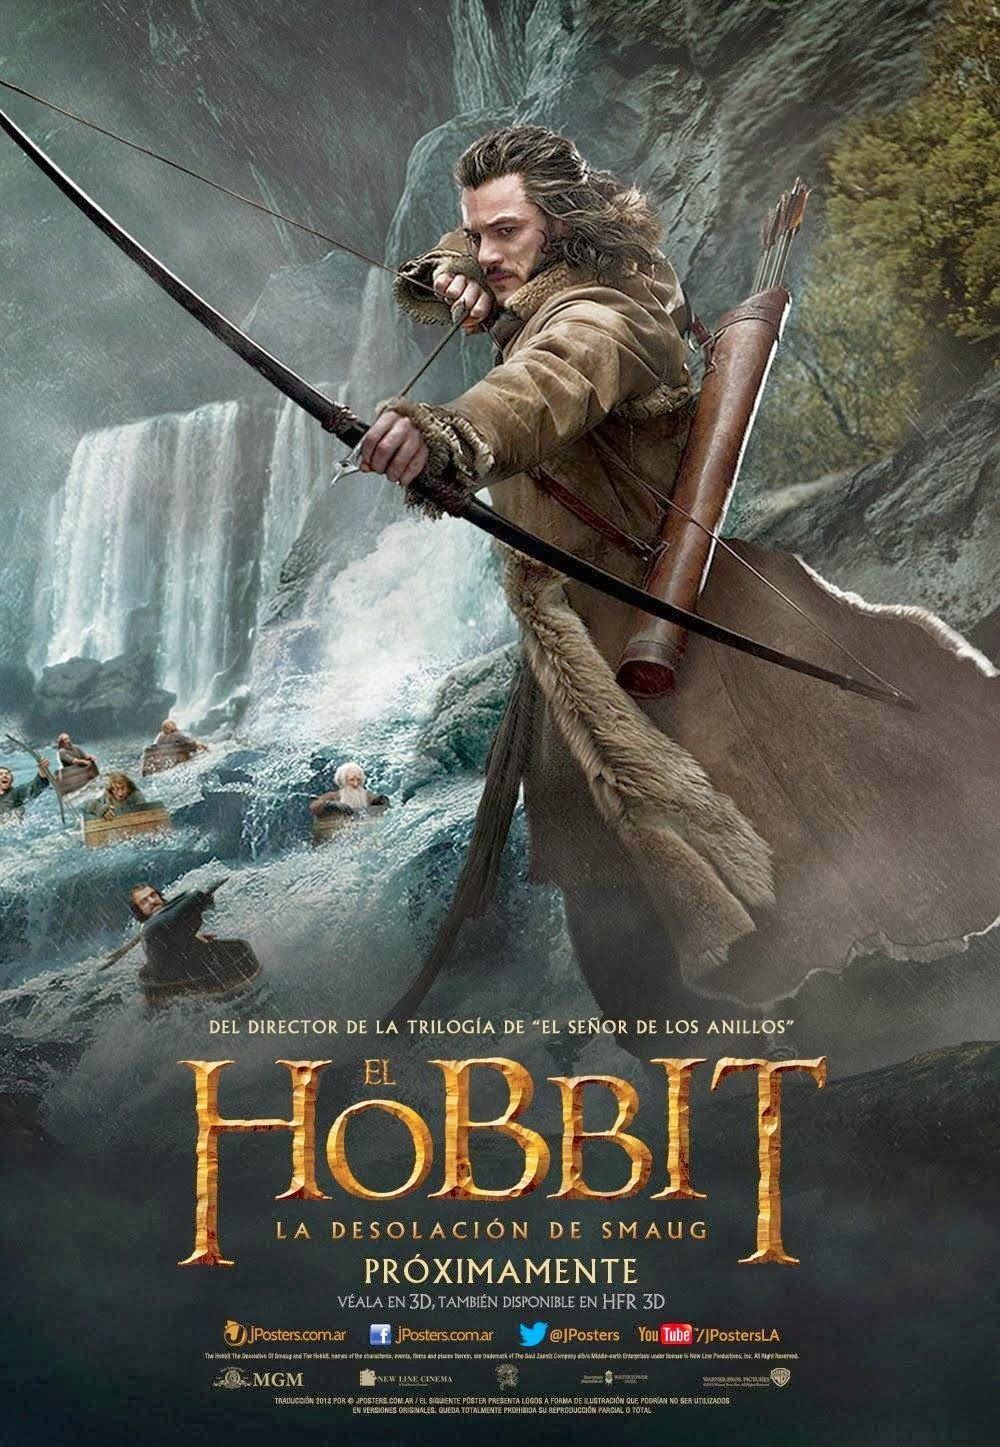 five new international posters for the hobbit: the desolation of